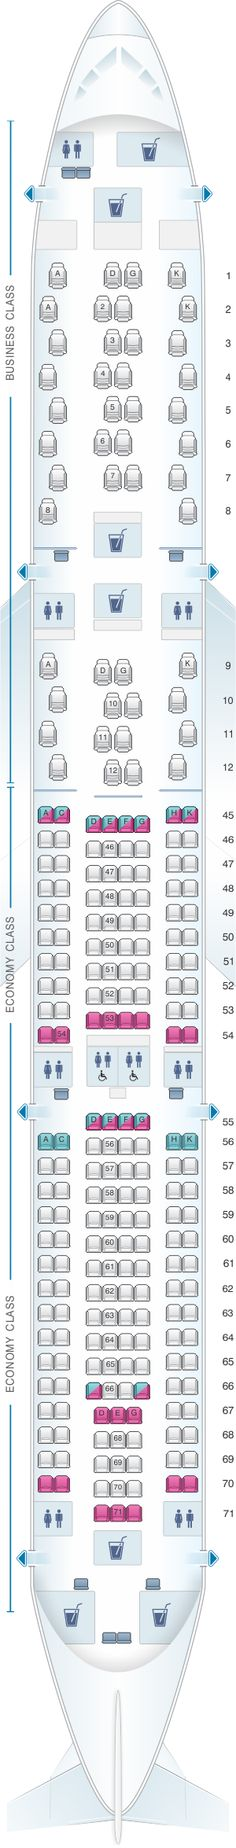 Seat Map South African Airways Airbus A330 300